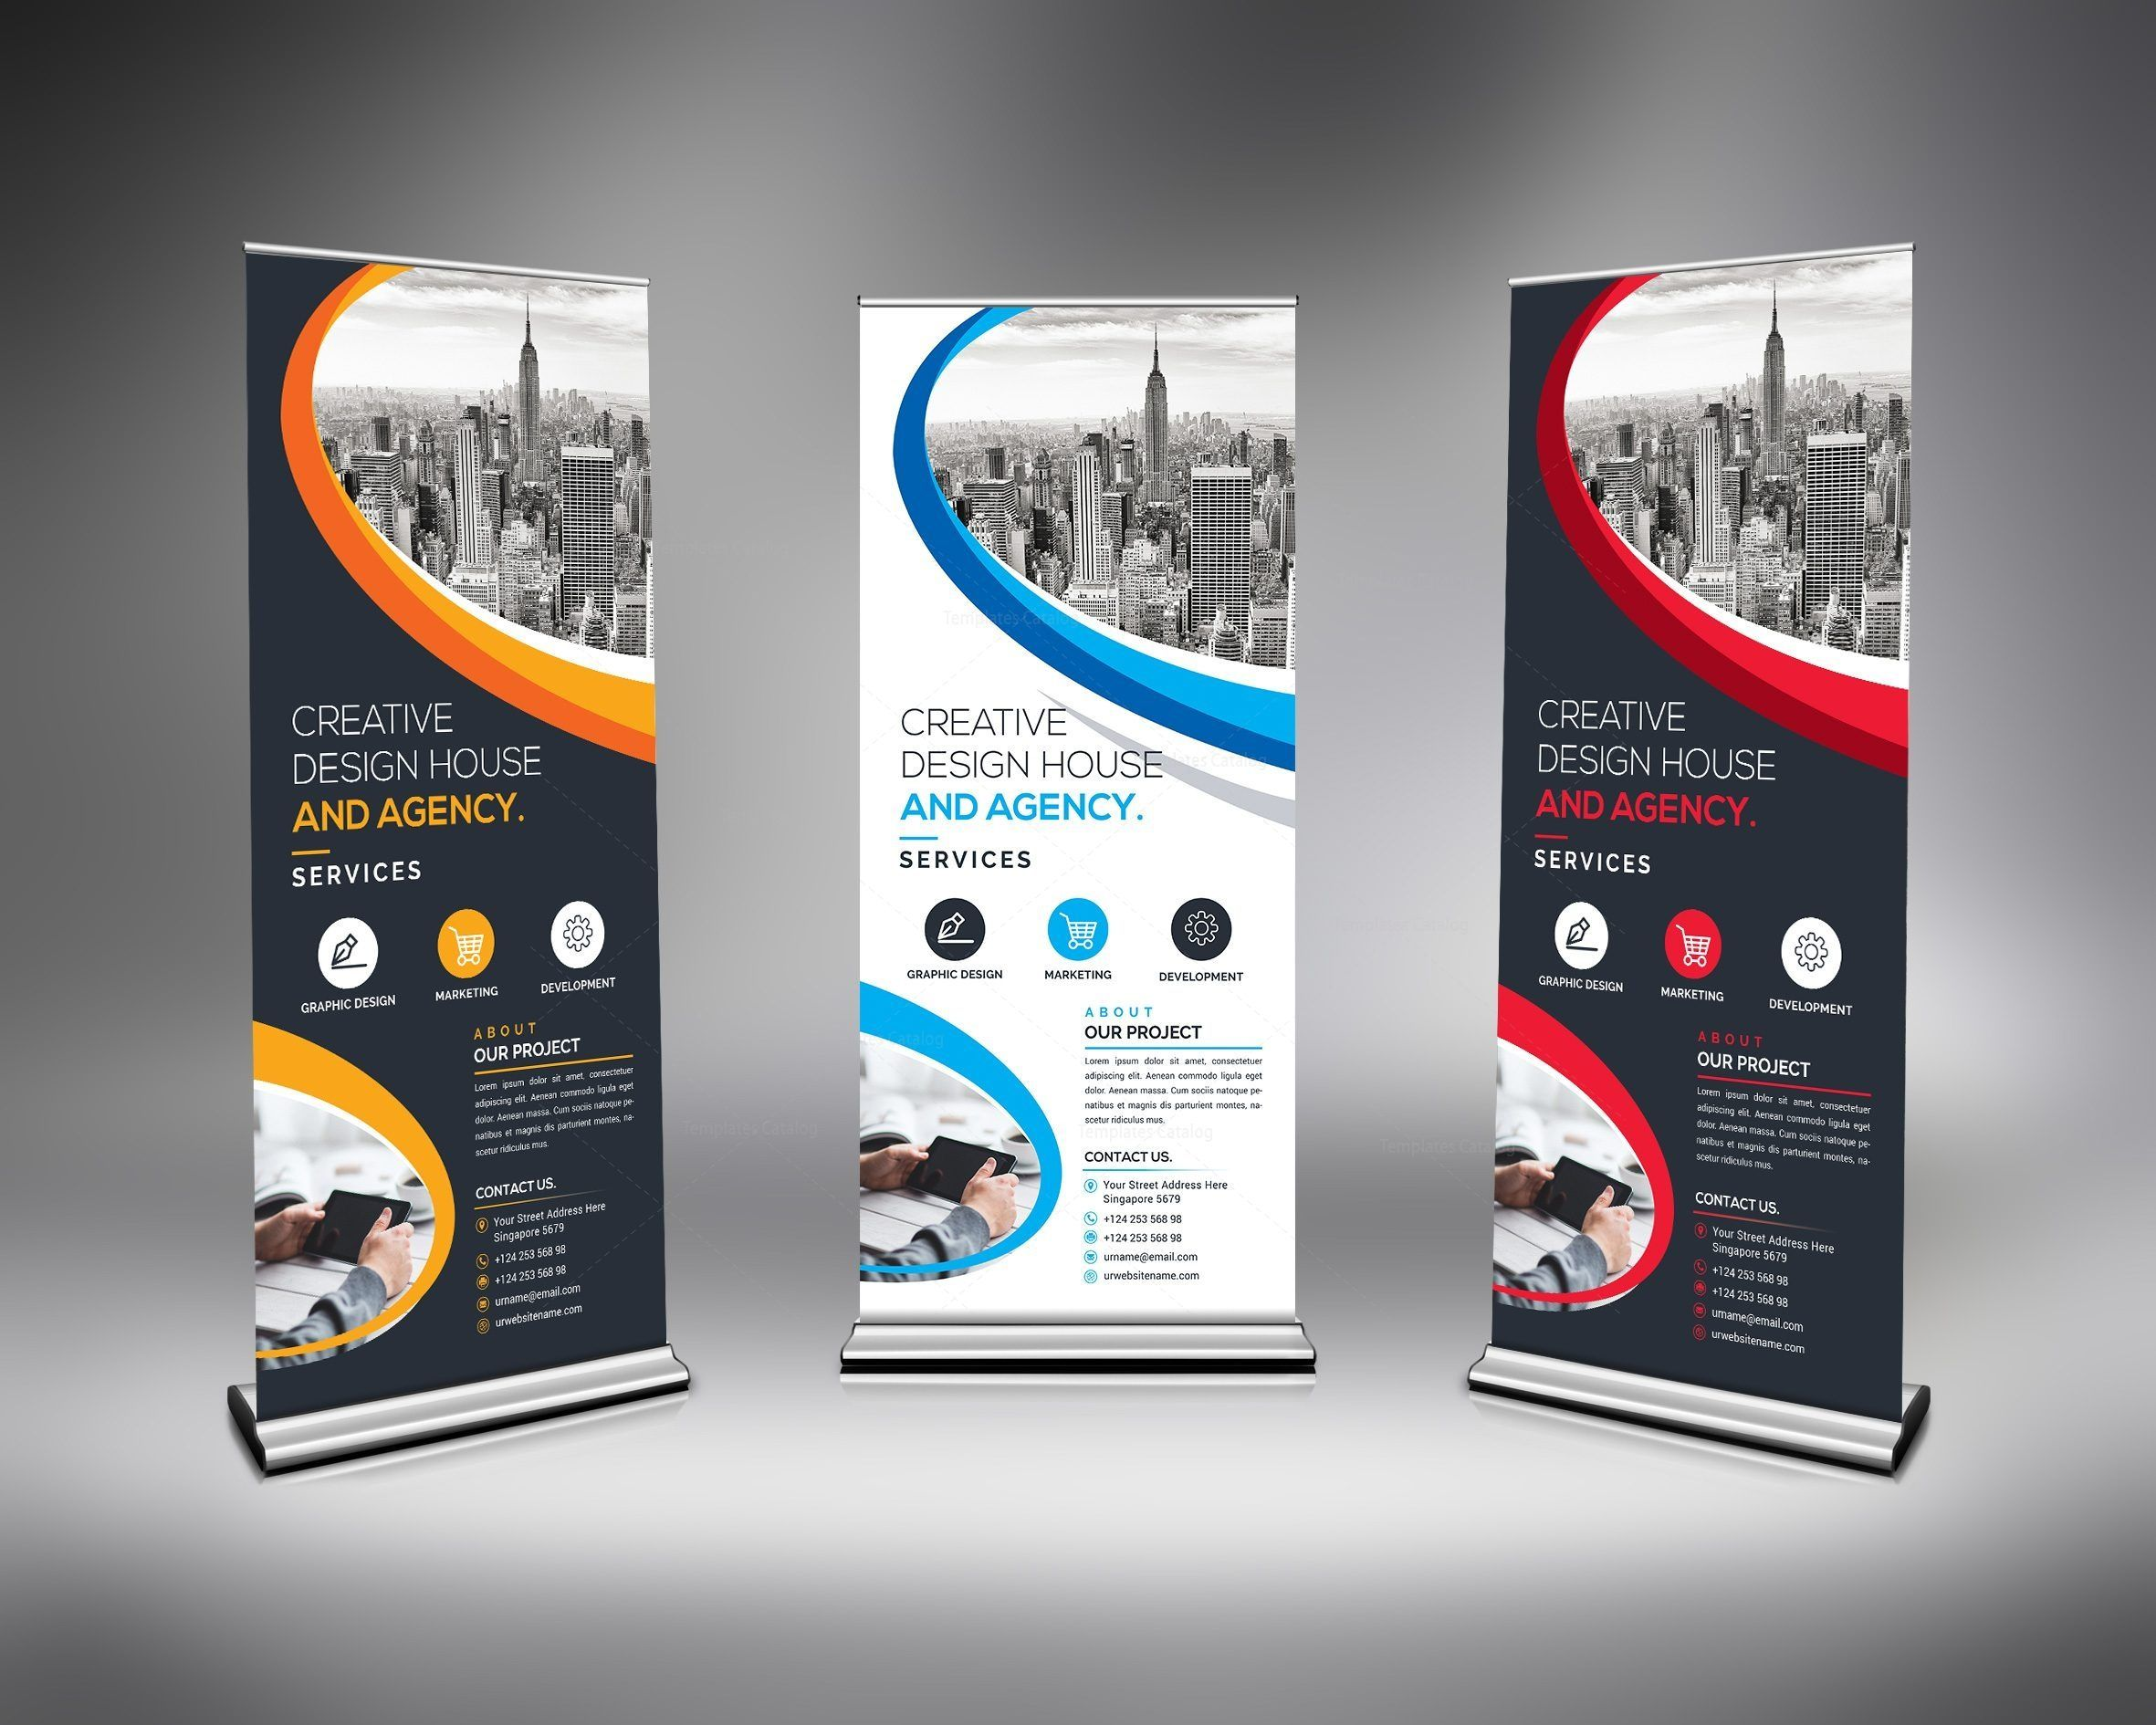 Best Roll Up Banner Template 7 Pull Up Banner Design Roller Banner Design Banner Template Design